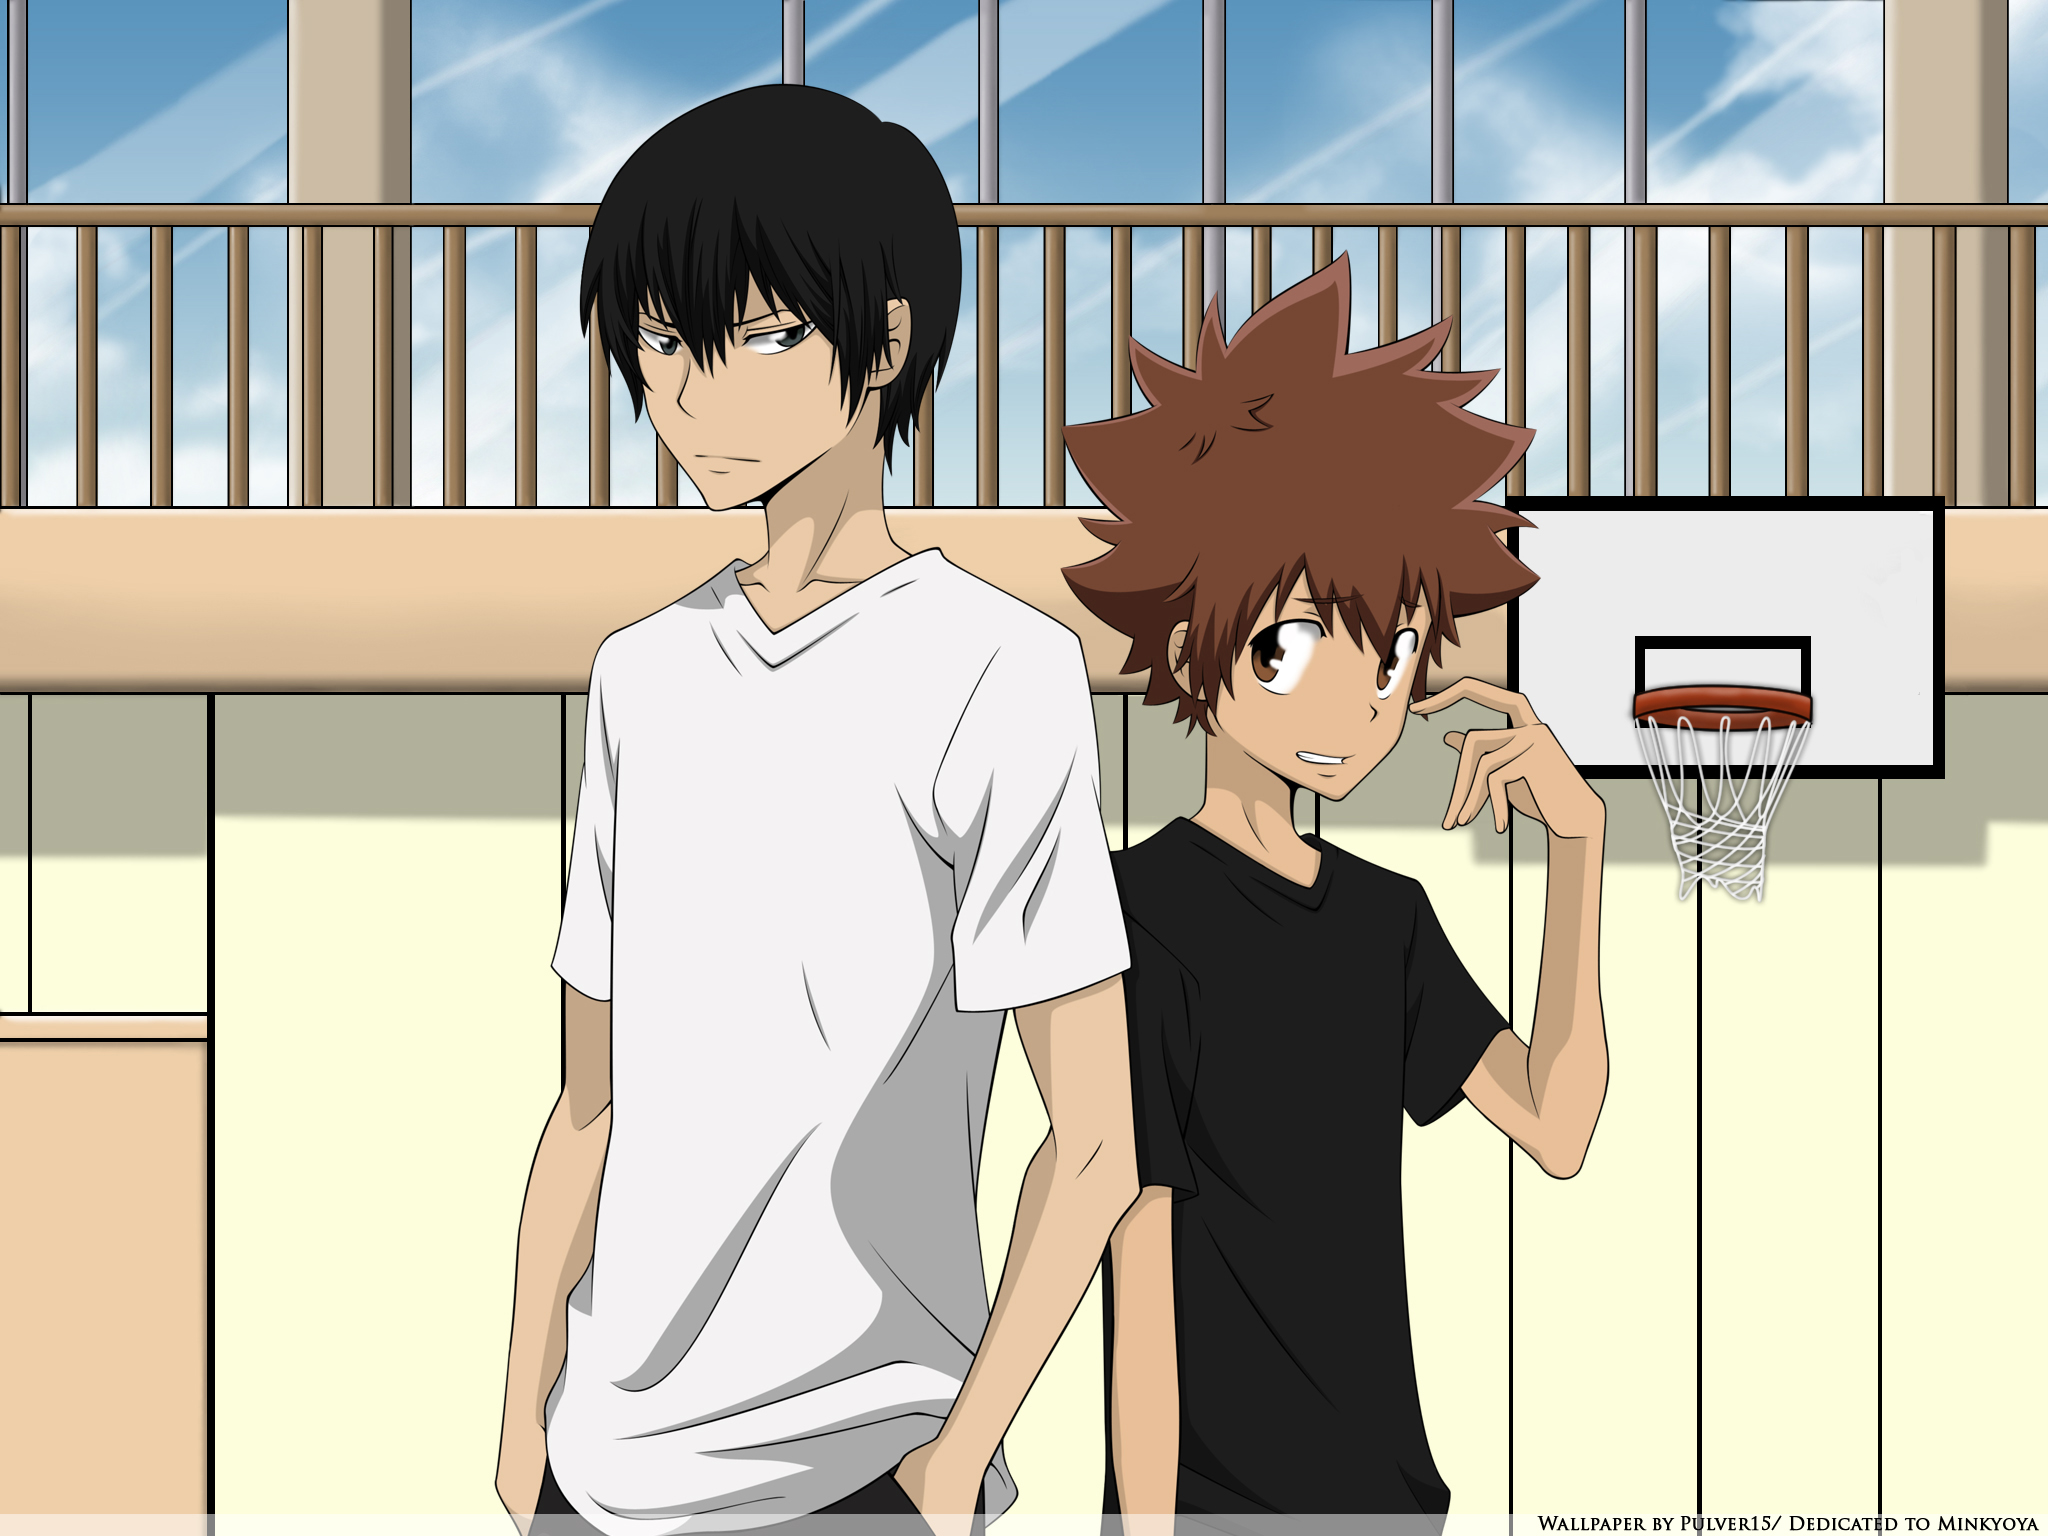 Katekyo Hitman Reborn Wallpaper Hibari Tsuna In The Gym